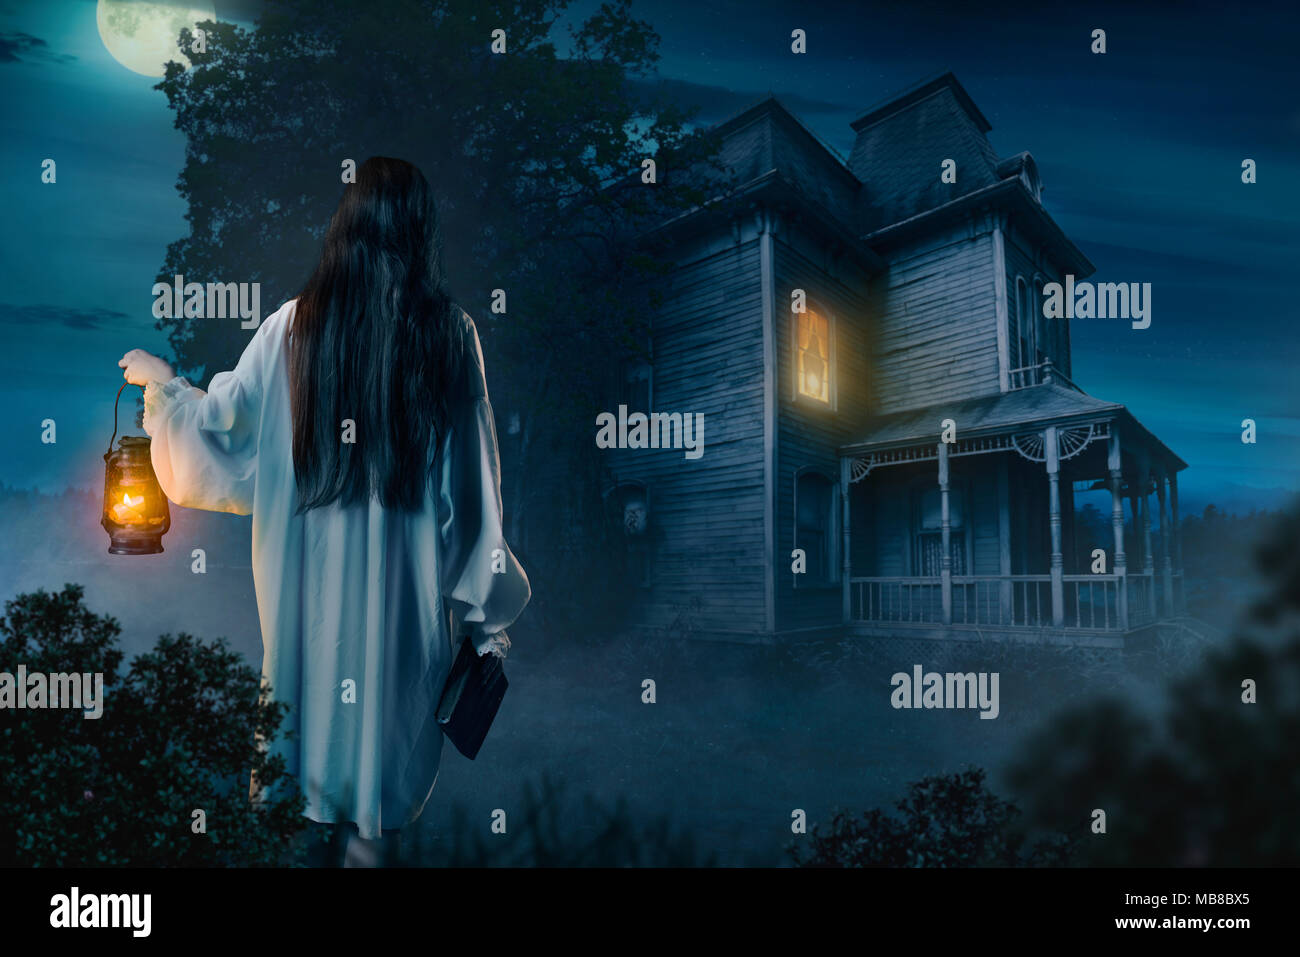 Female person in white shirt holds kerosene lamp and spellbook in hand against abondoned house, moonlit night, back view. Dark magic, occultism and ex - Stock Image